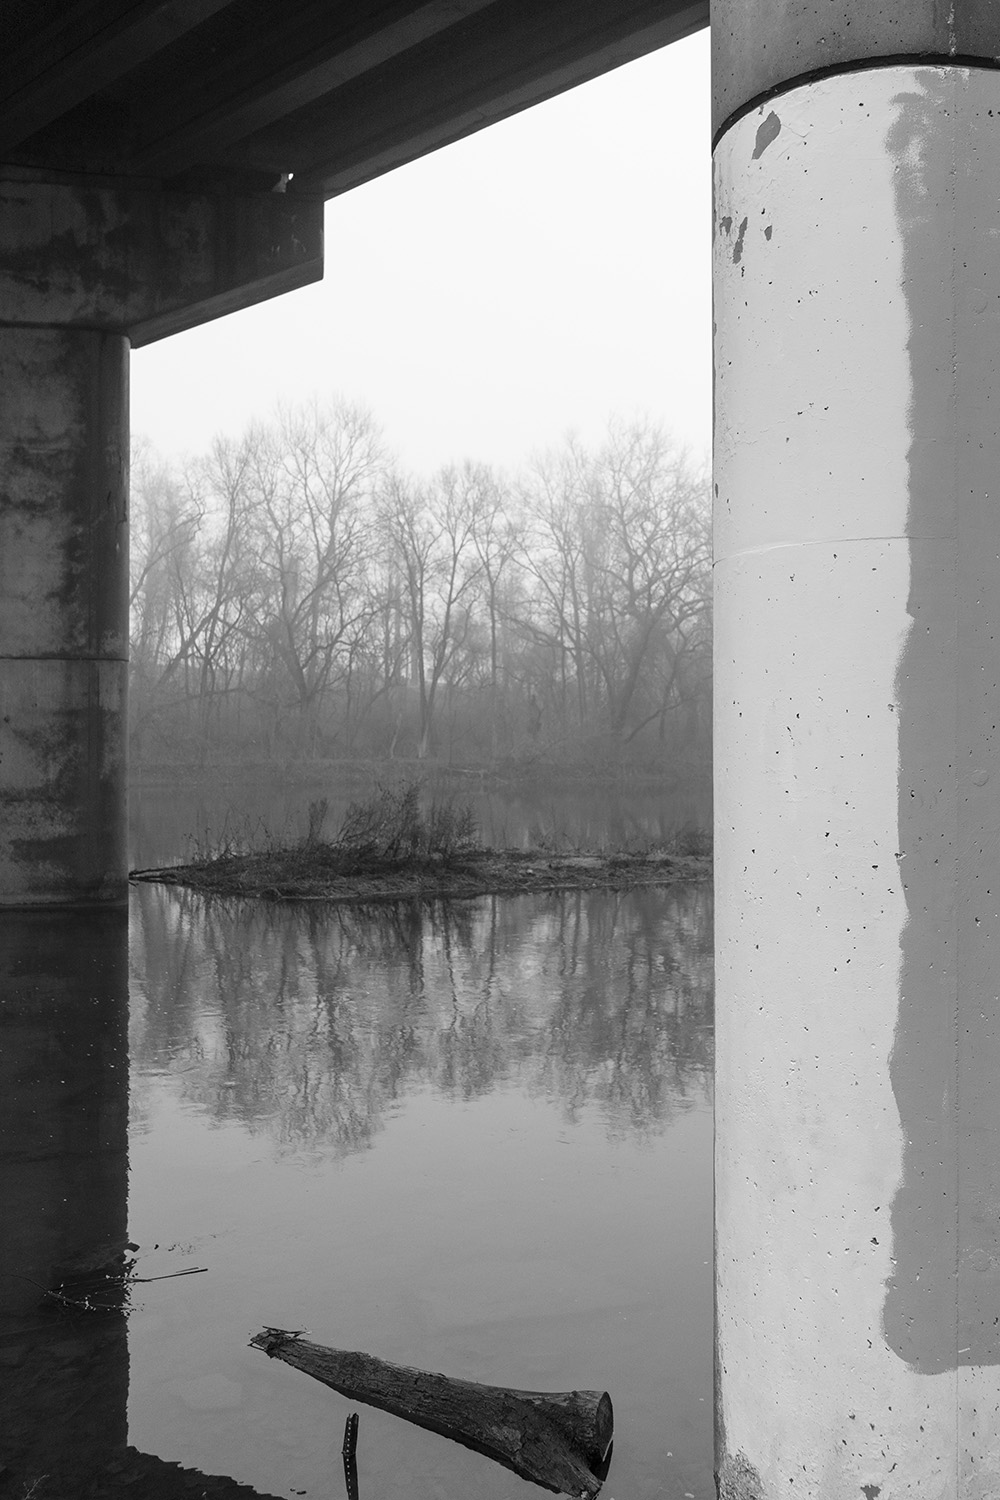 Bridge - Conodoguinet Creek - Fine Art Photography - Harrisburg, Pennsylvania